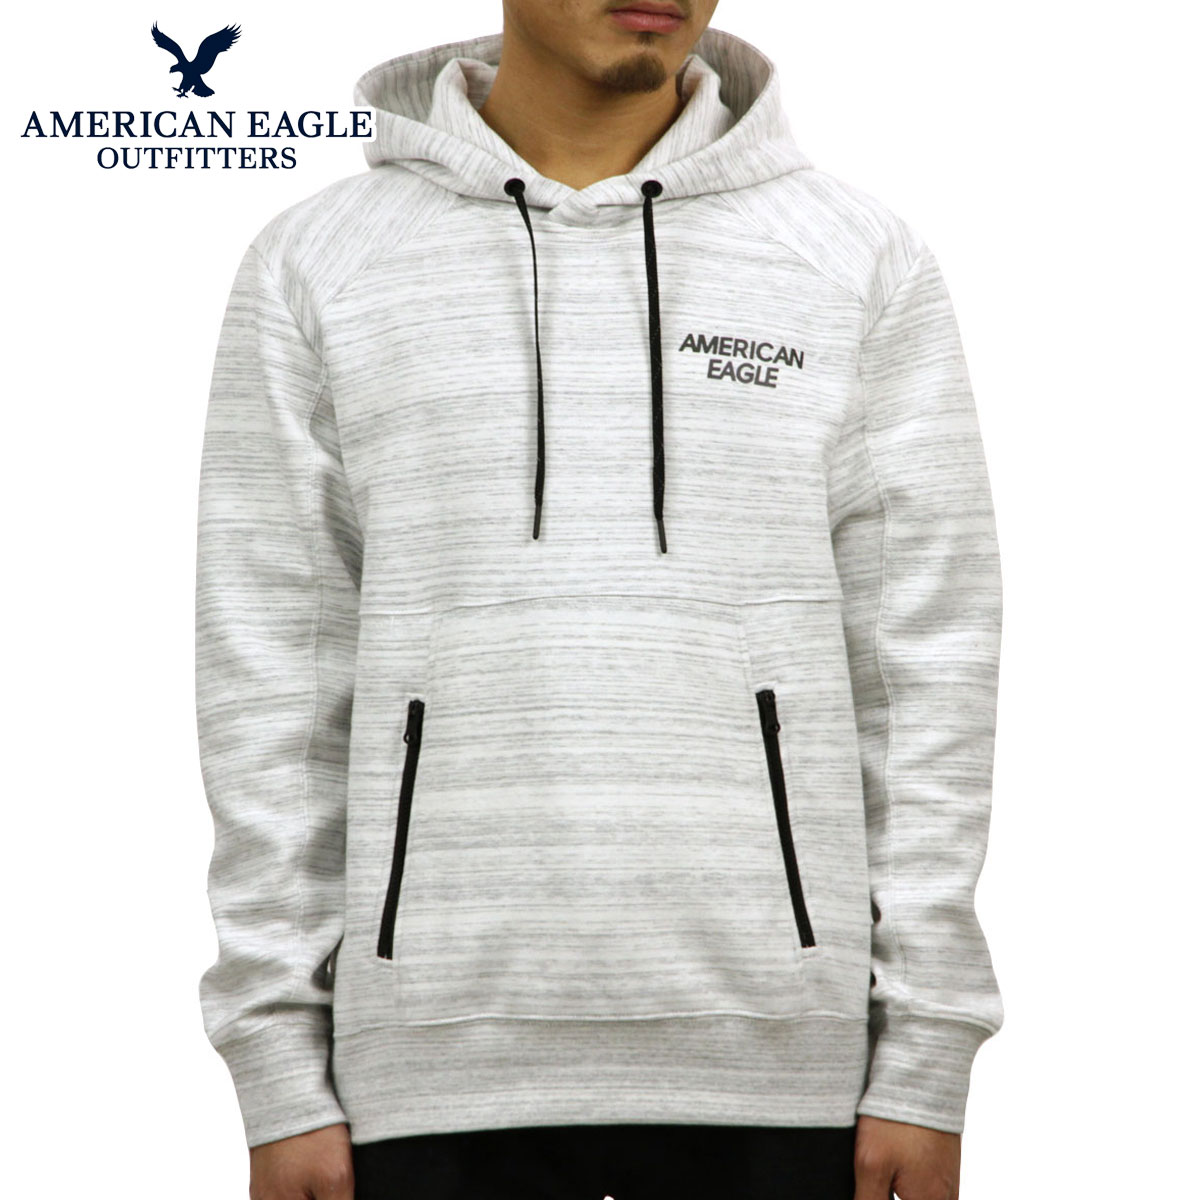 606d5dd9849 American eagle AMERICAN EAGLE regular article men fleece pullover parka AE  ACTIVE REFLECTIVE GRAPHIC POPOVER HOODIE 0193-9792-006